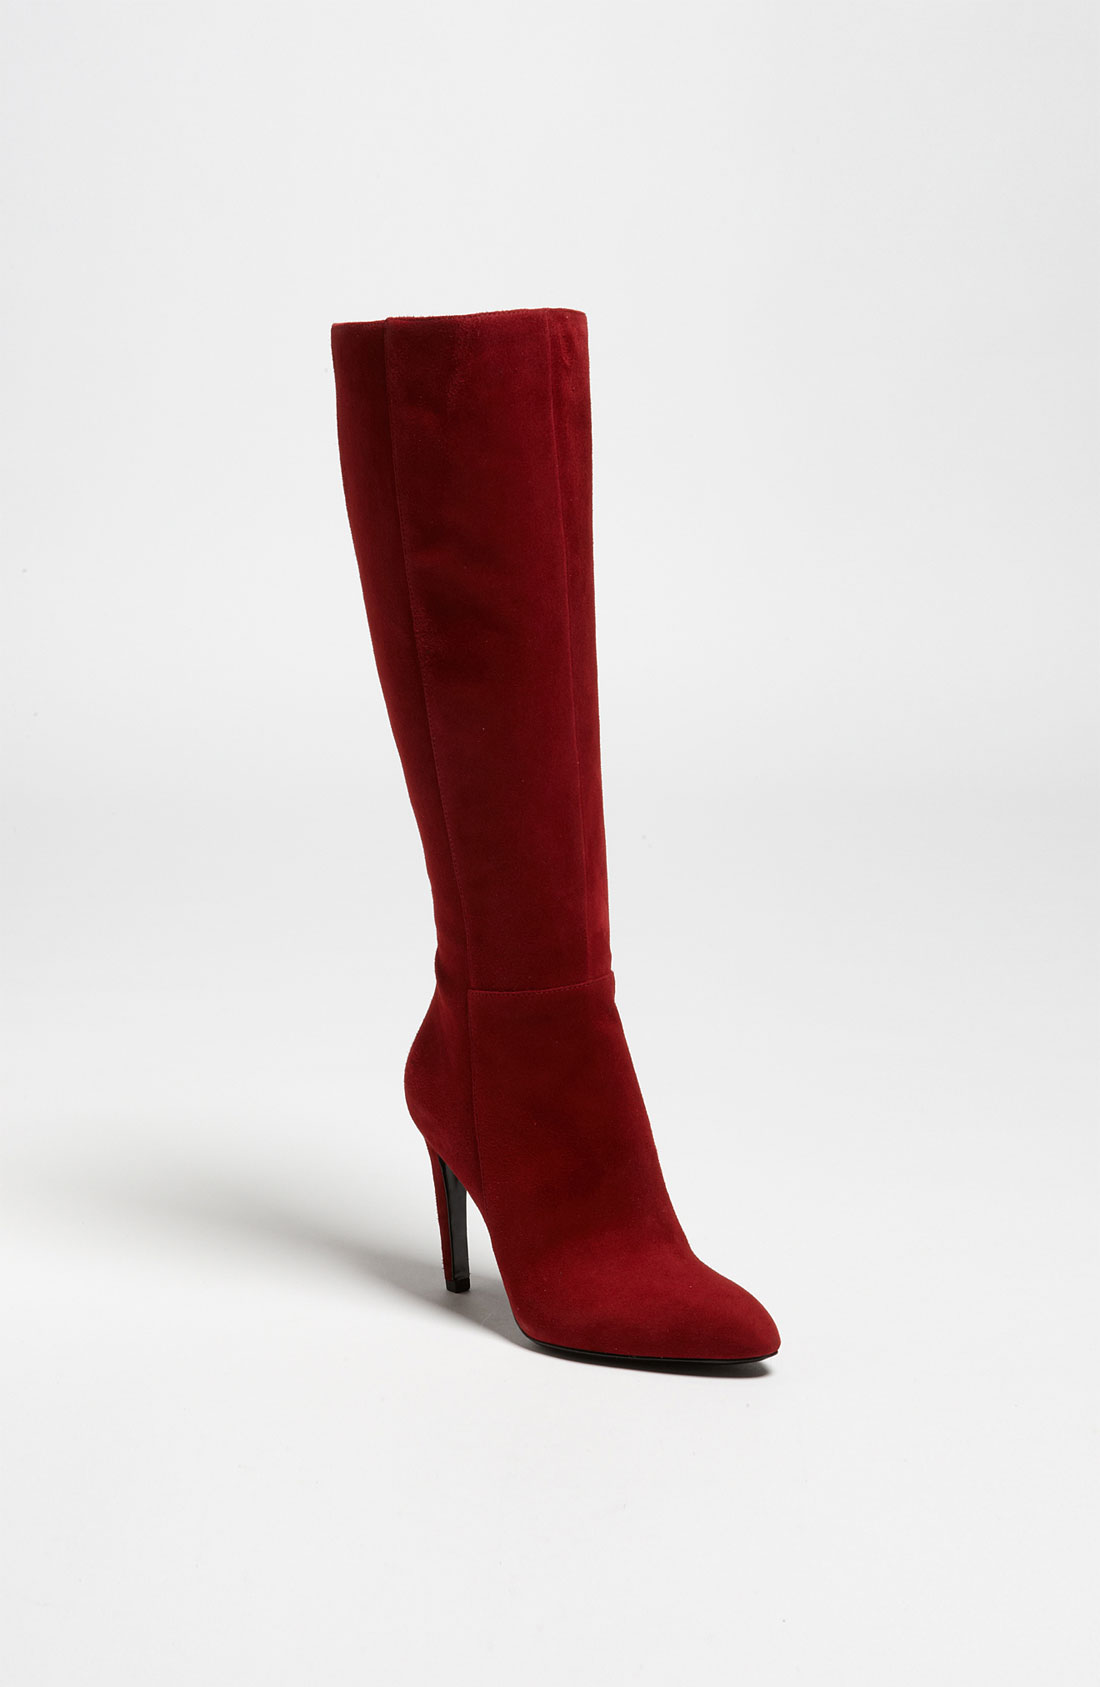 via spiga bethany boot in suede lyst